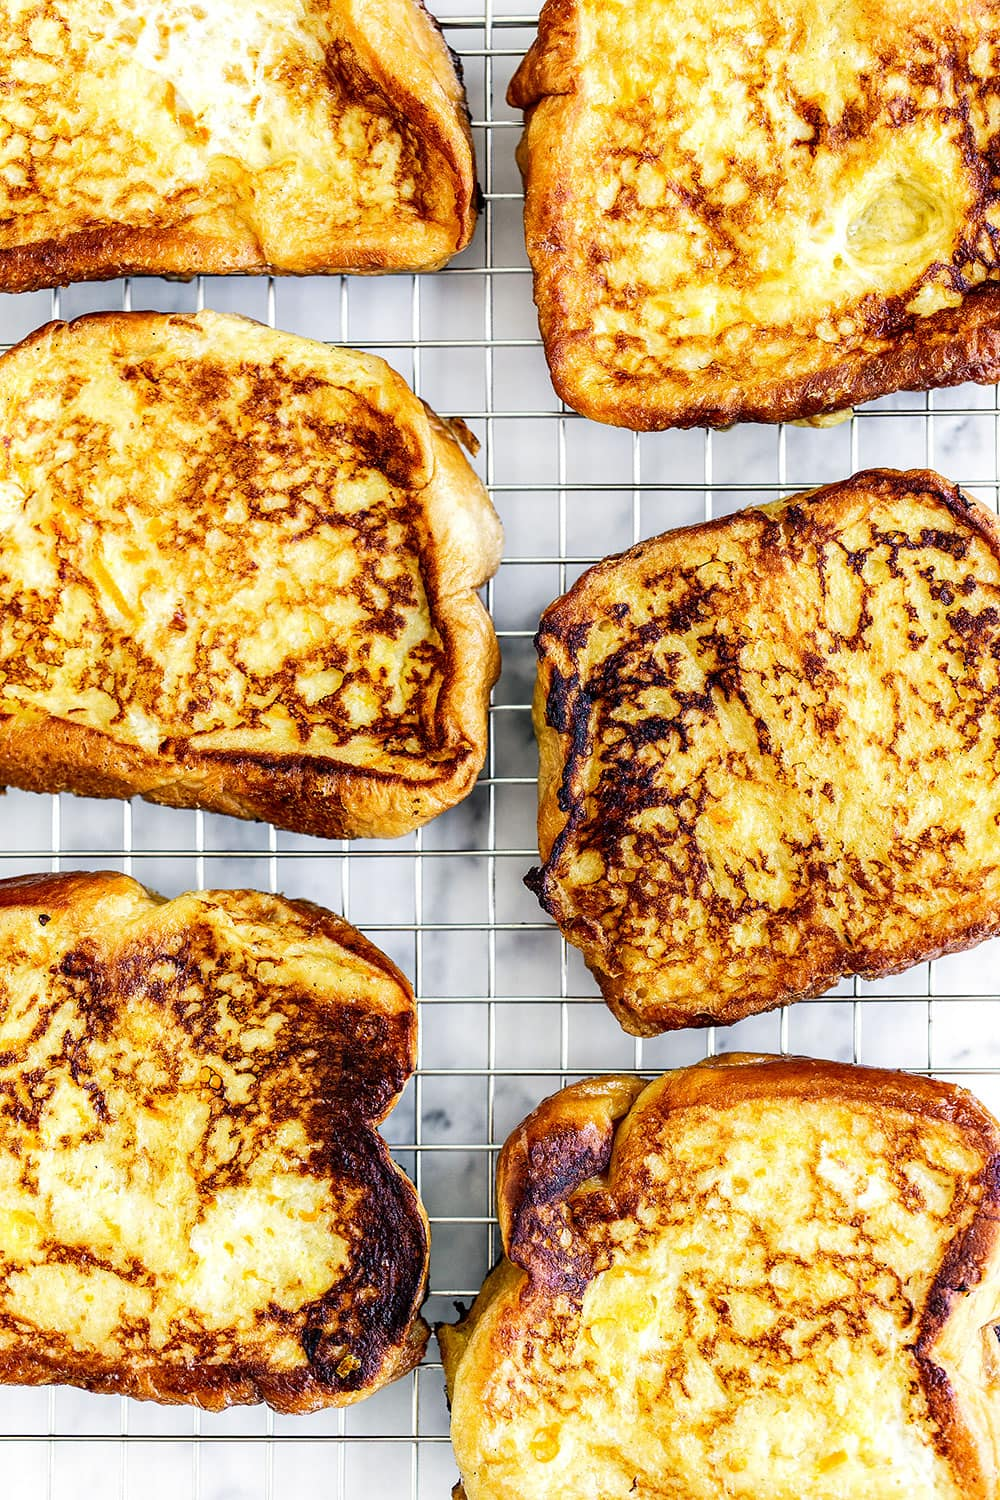 French toast on a cooling rack so it doesn't get soggy